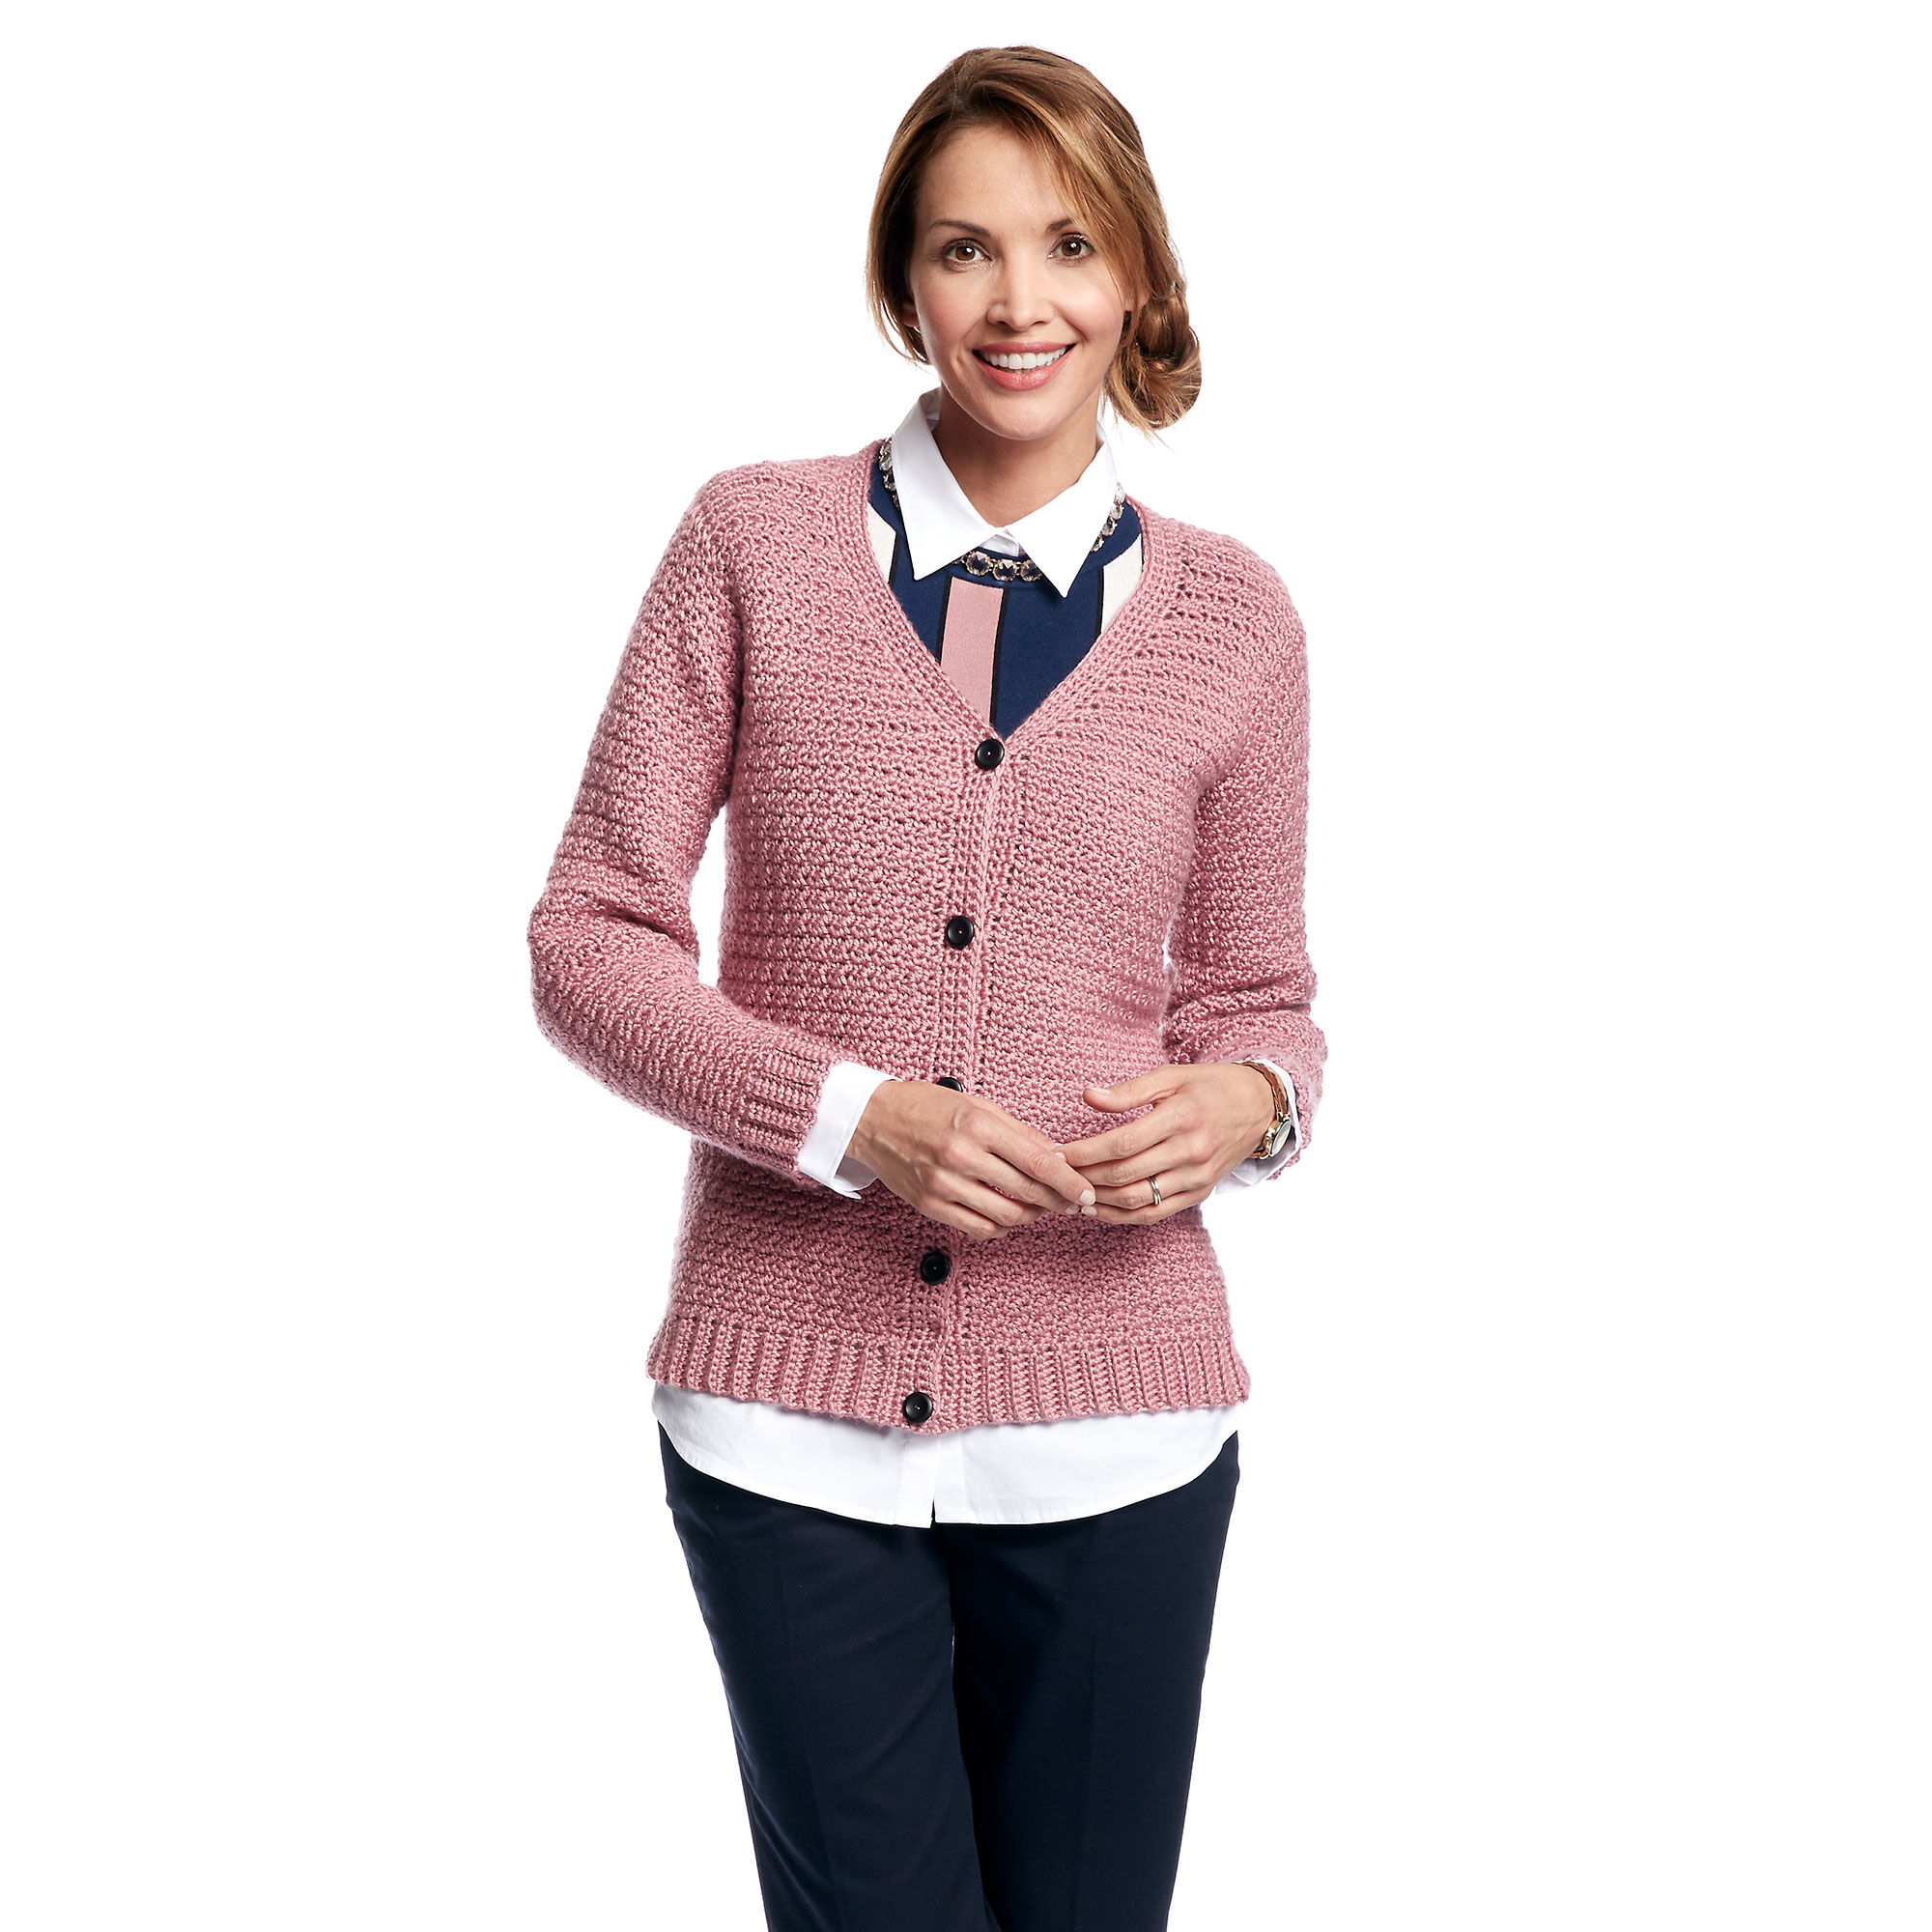 e68f78b3c678 ... Caron Adult Crochet V-Neck Cardigan